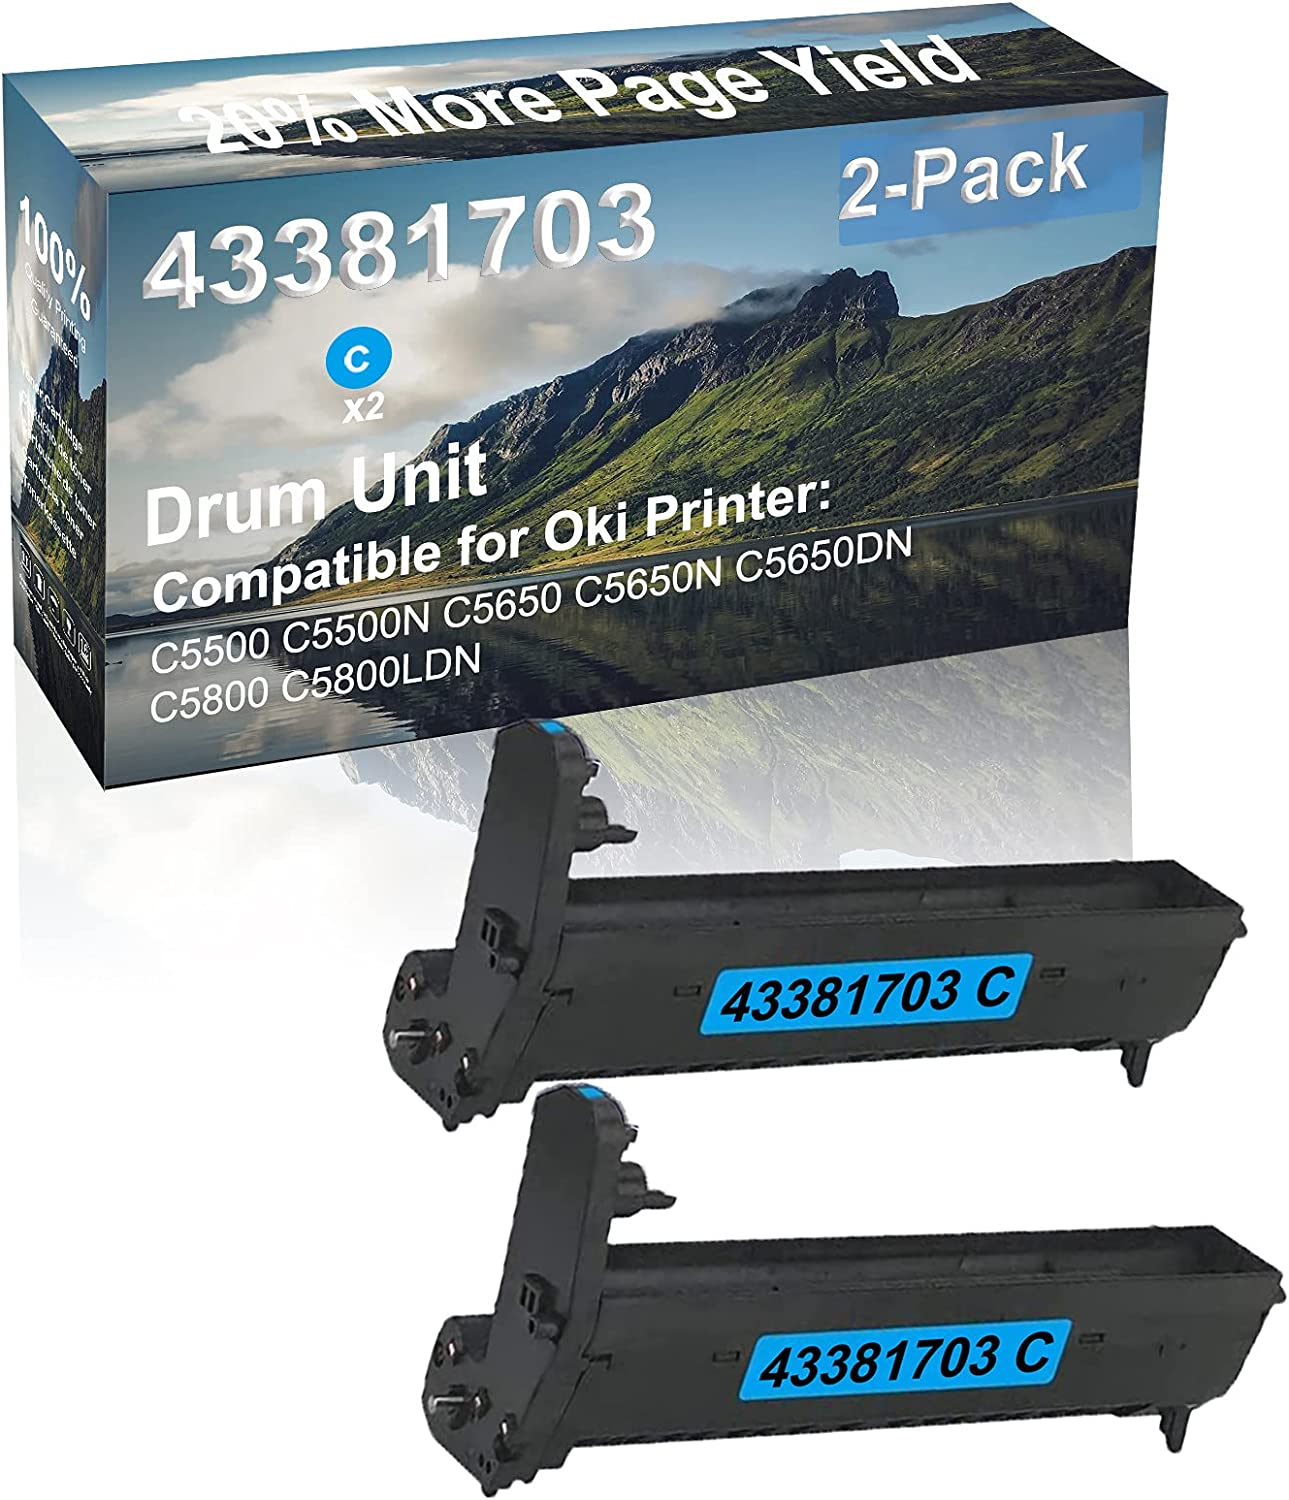 2-Pack (Cyan) Compatible C5650N C5650DN Printer Drum Kit High Capacity Replacement for Oki 43381703 Drum Unit